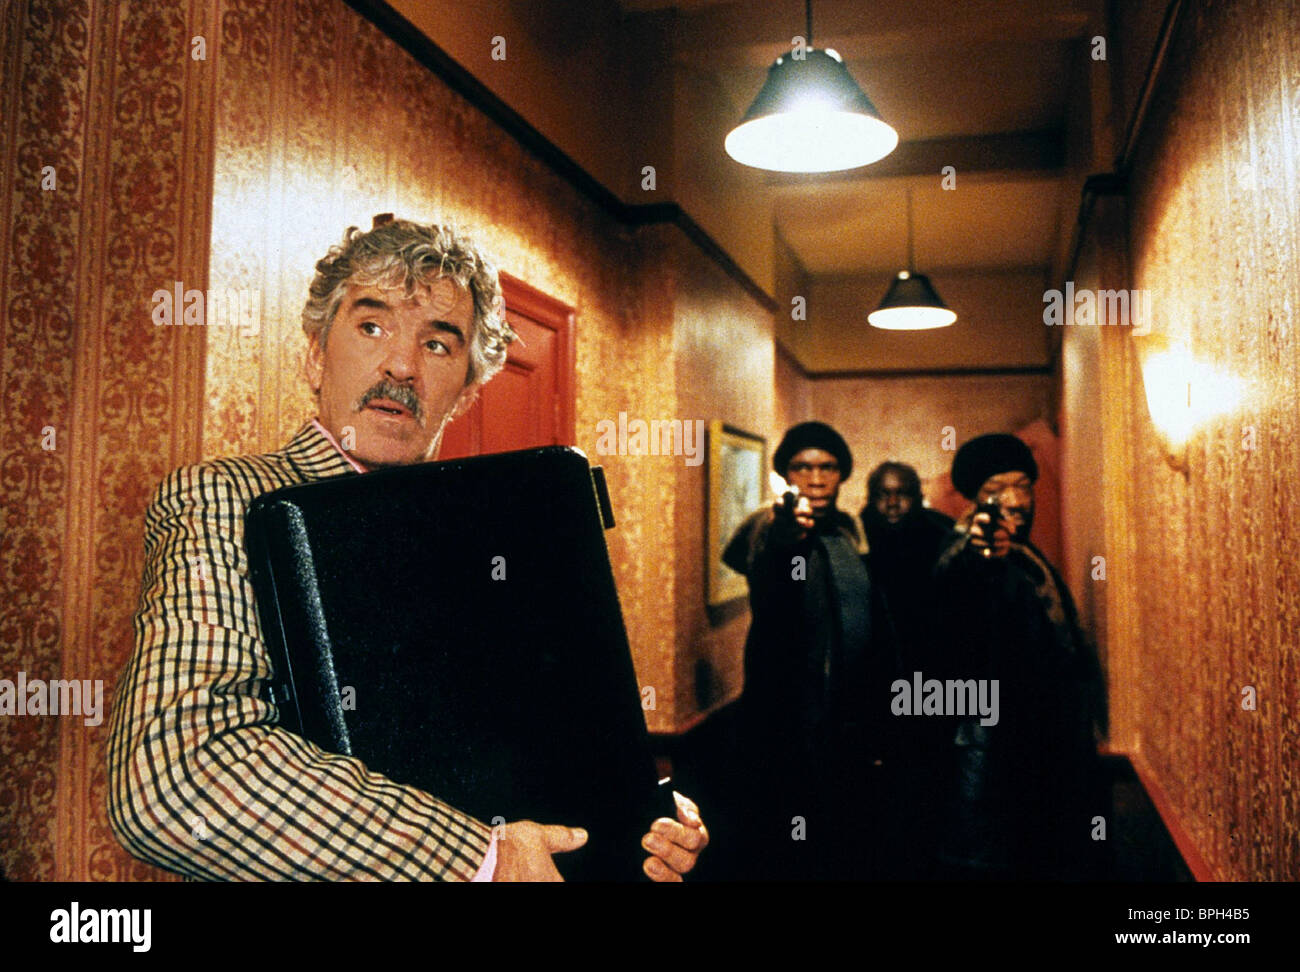 DENNIS FARINA JAMES ADE JAMES SNATCH (2000) - Stock Image